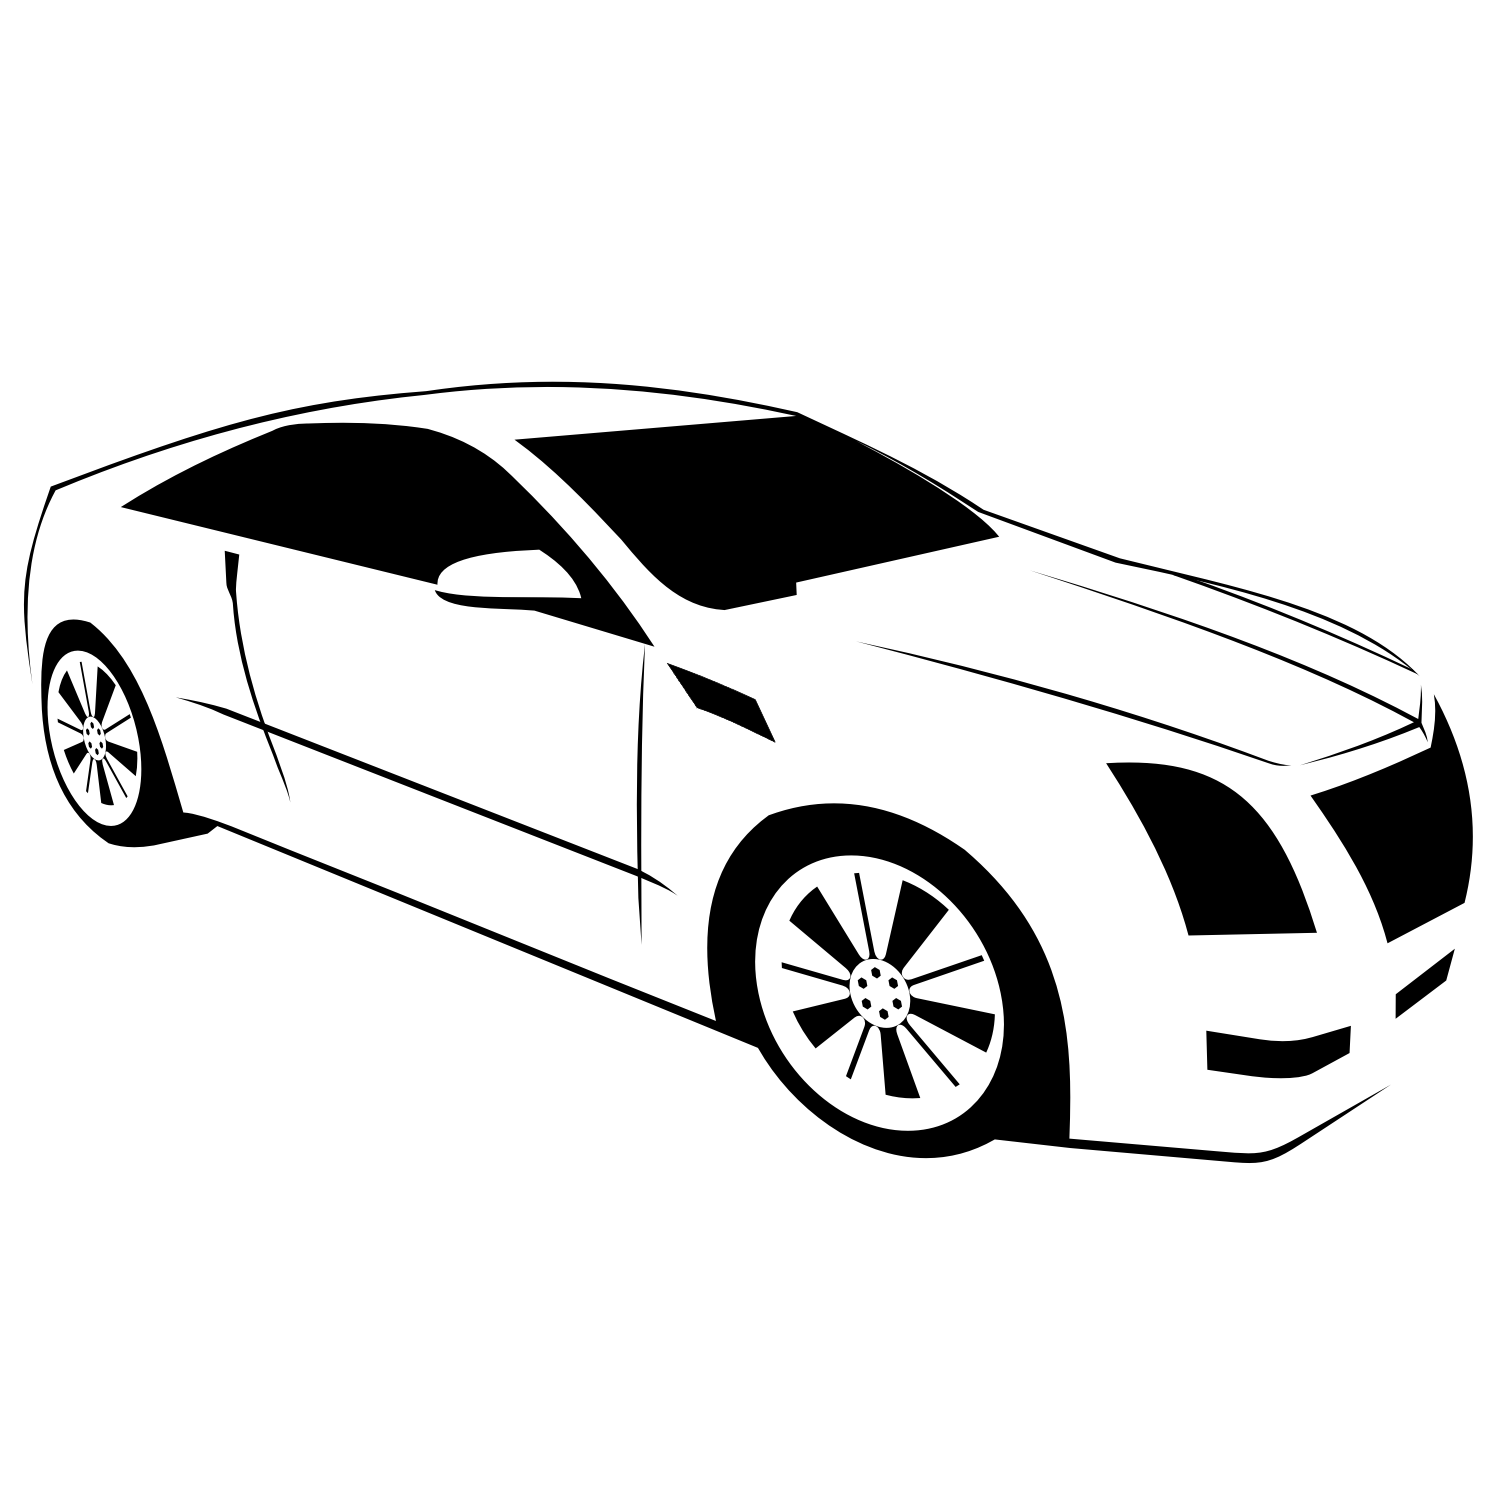 Easy Drawing Car together with Royalty Free Race Car Logo By Vector Tradition Sm 4435 together with 483747221 besides 113487962 also Black Car Front Silhouettes 252414. on sports car illustration